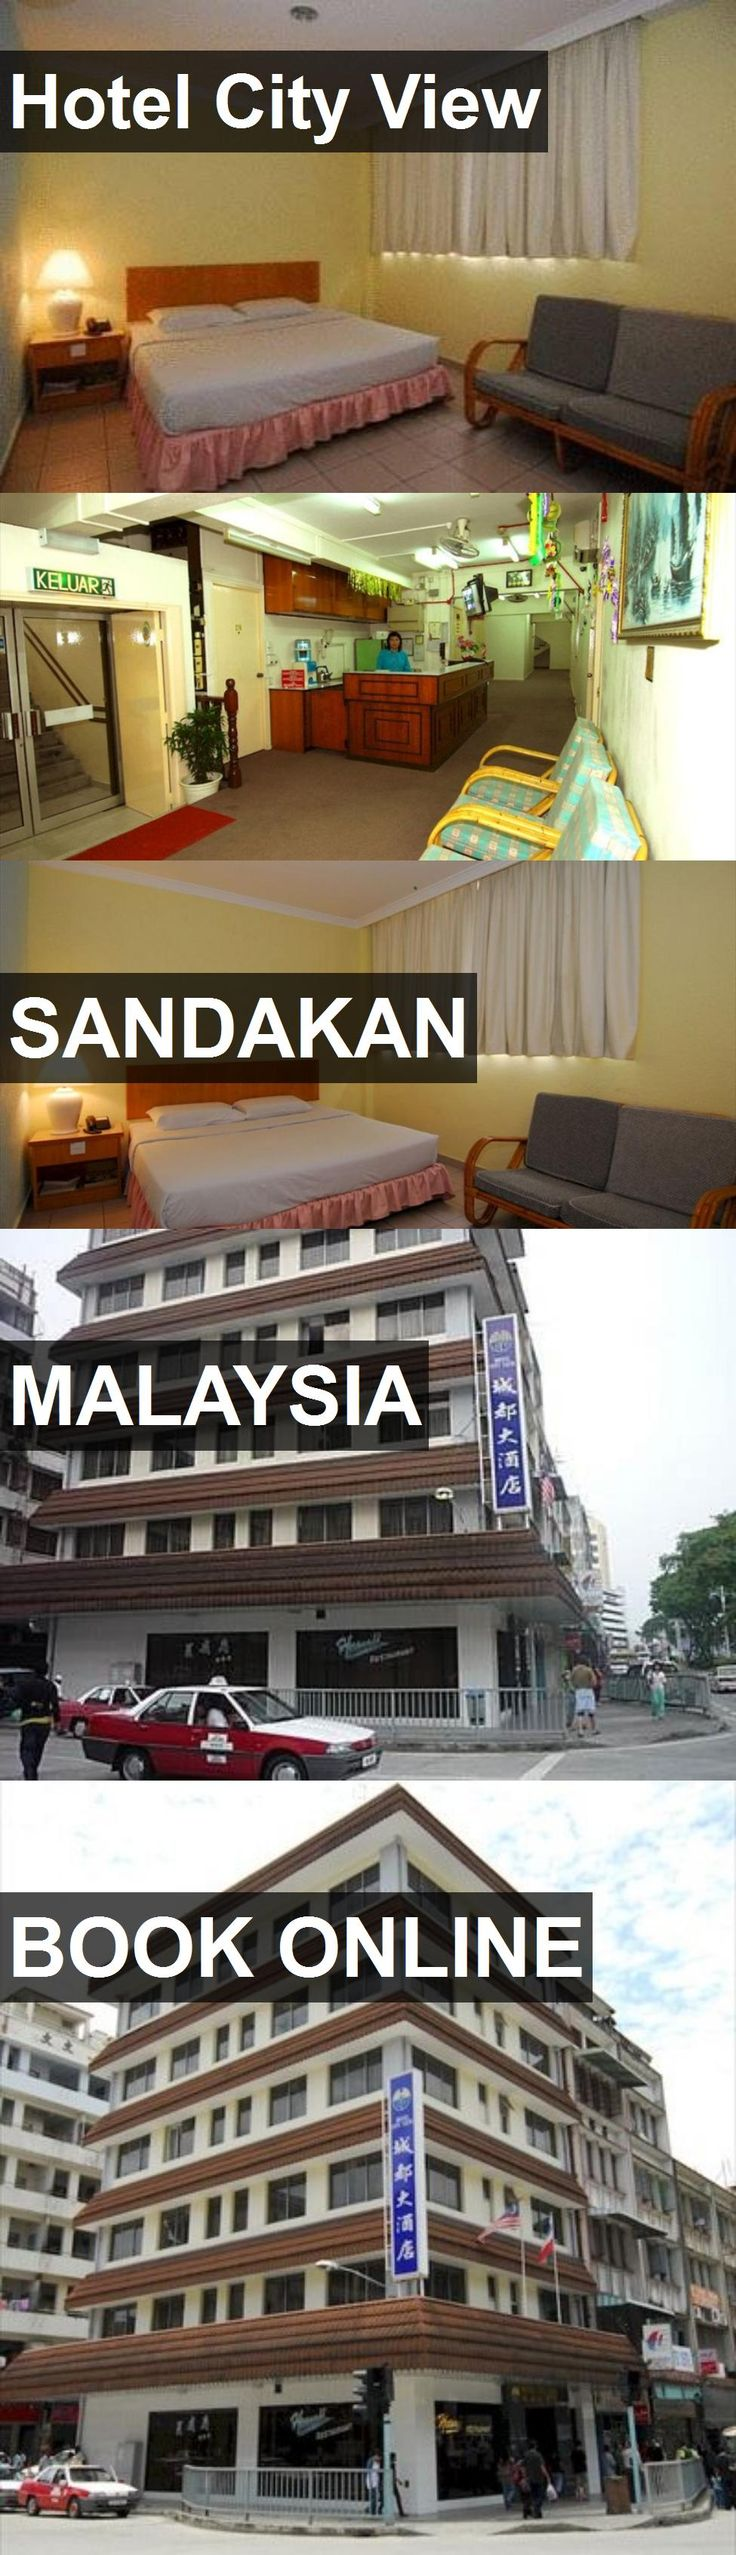 Hotel Hotel City View in Sandakan, Malaysia. For more information, photos, reviews and best prices please follow the link. #Malaysia #Sandakan #HotelCityView #hotel #travel #vacation